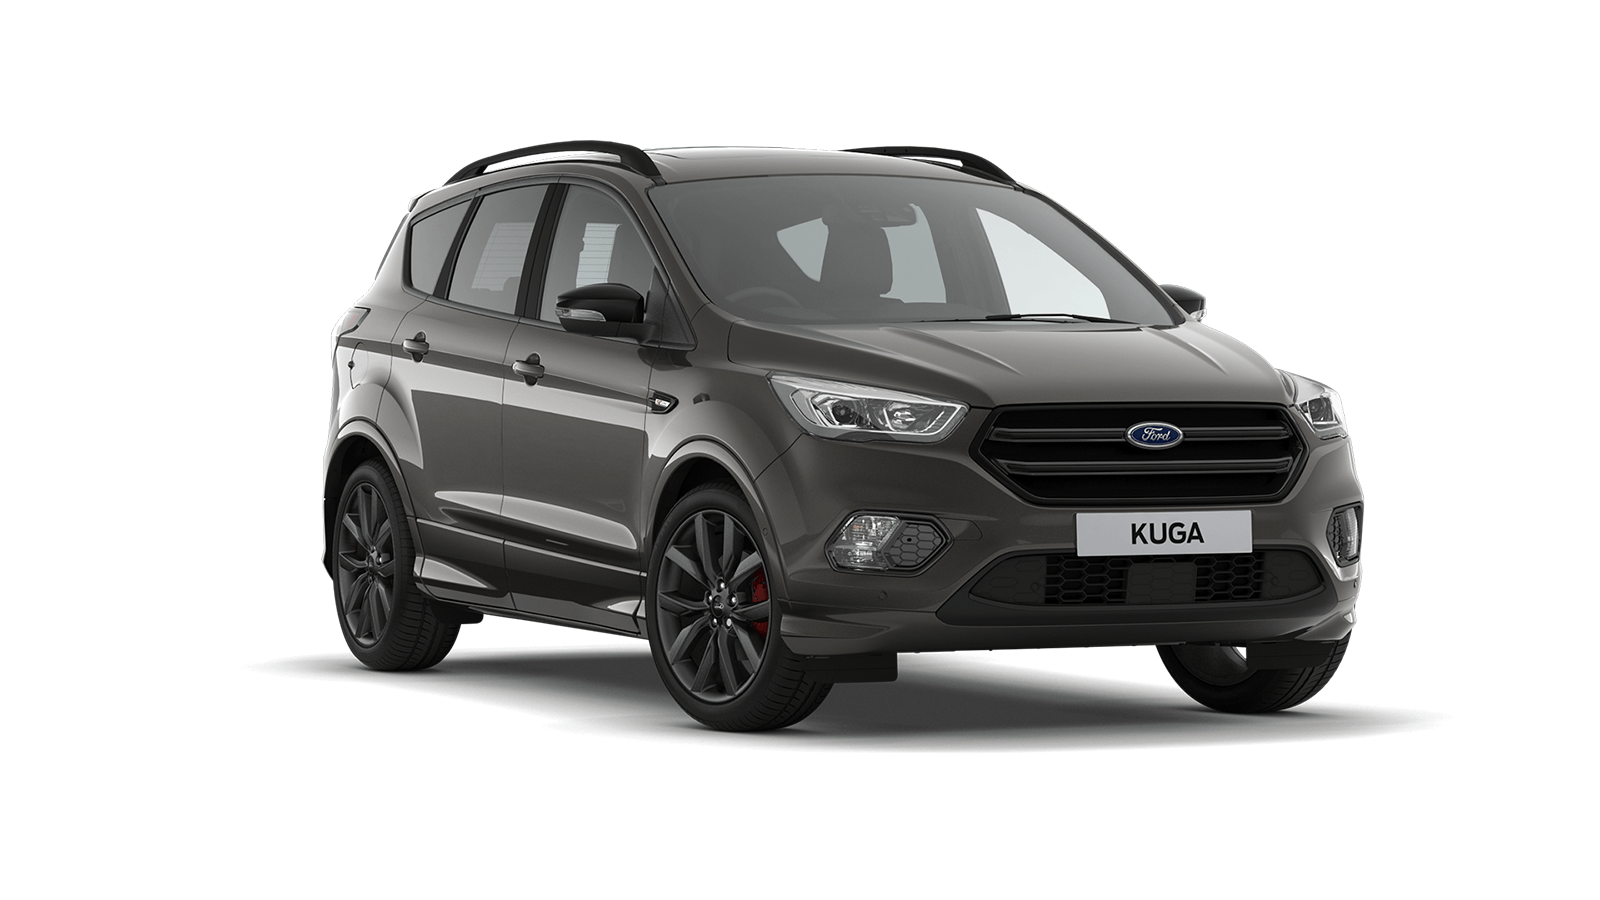 https://www.dealerinternet.co.uk/images/KUGA/2019.25/5%20Door/ST-LineEdition/MAGNETIC.png